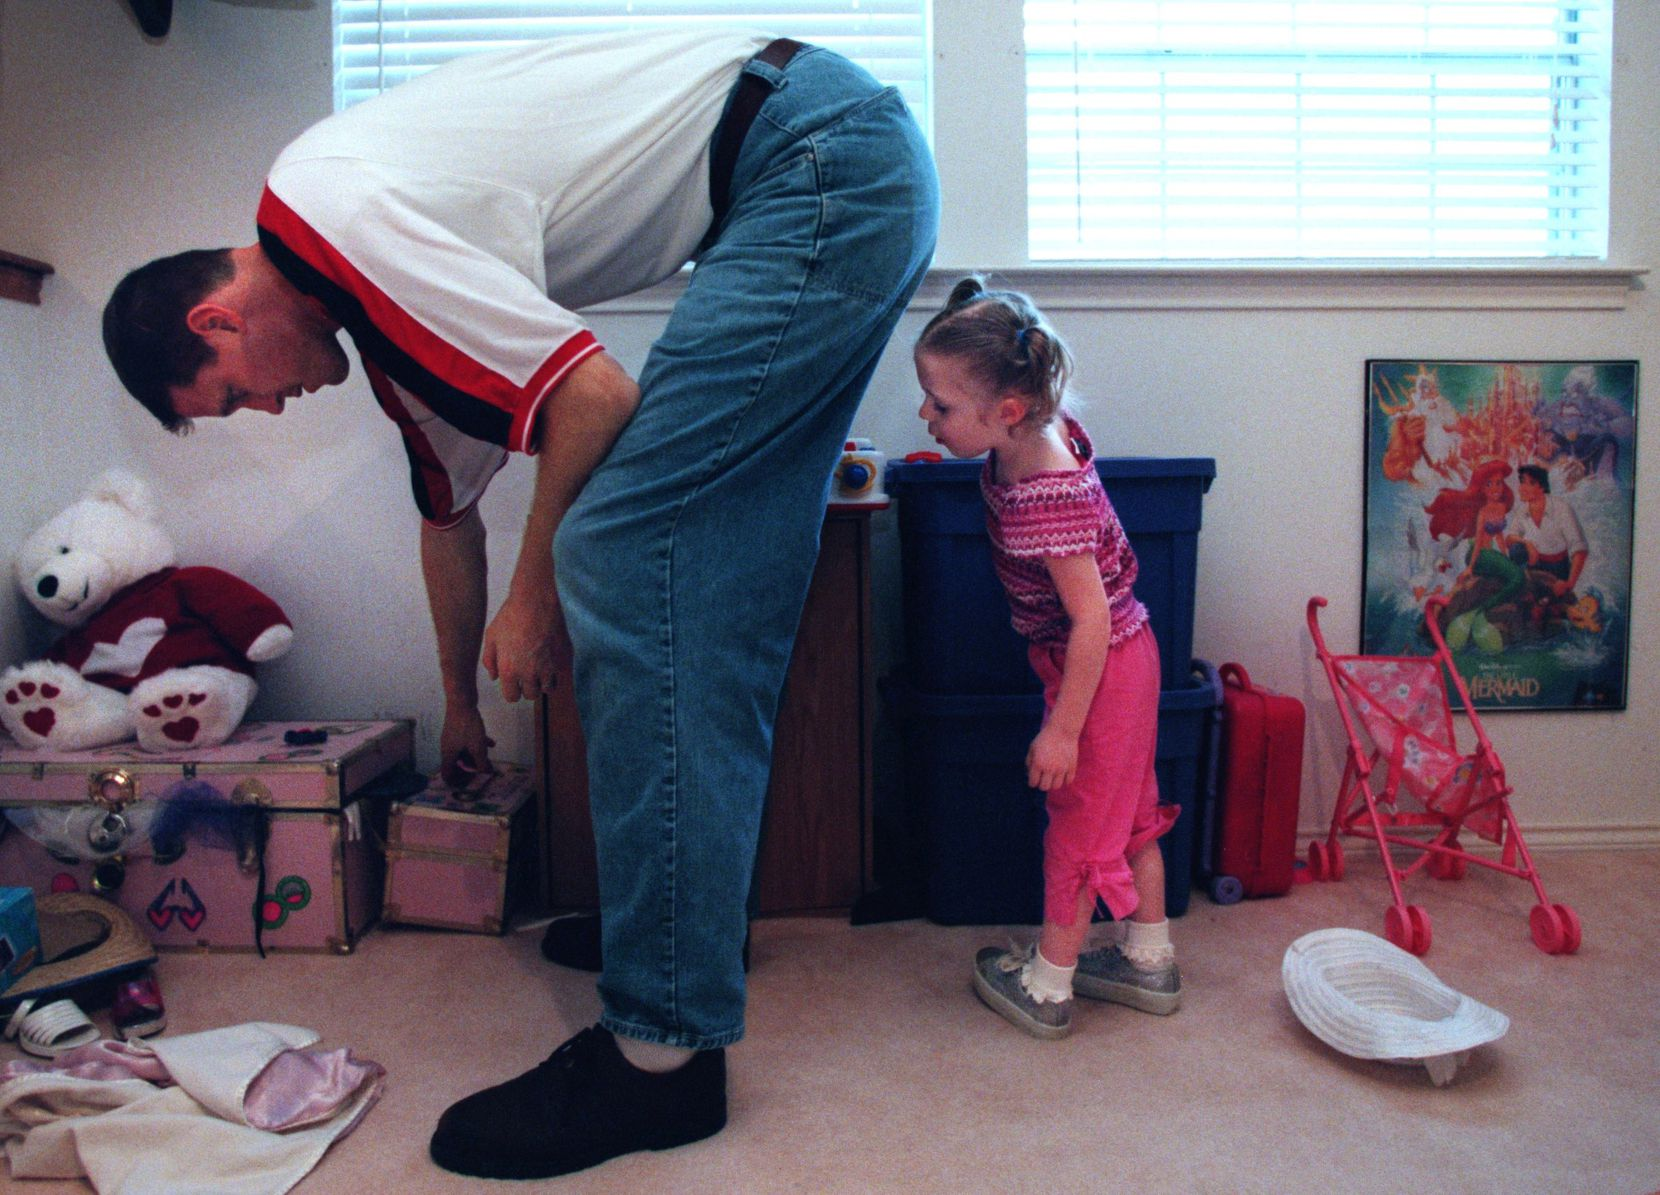 Dallas Mavericks center Shawn Bradley helps his daughter Chelsea, 3, find a toy in the upstairs play room at their Plano home.